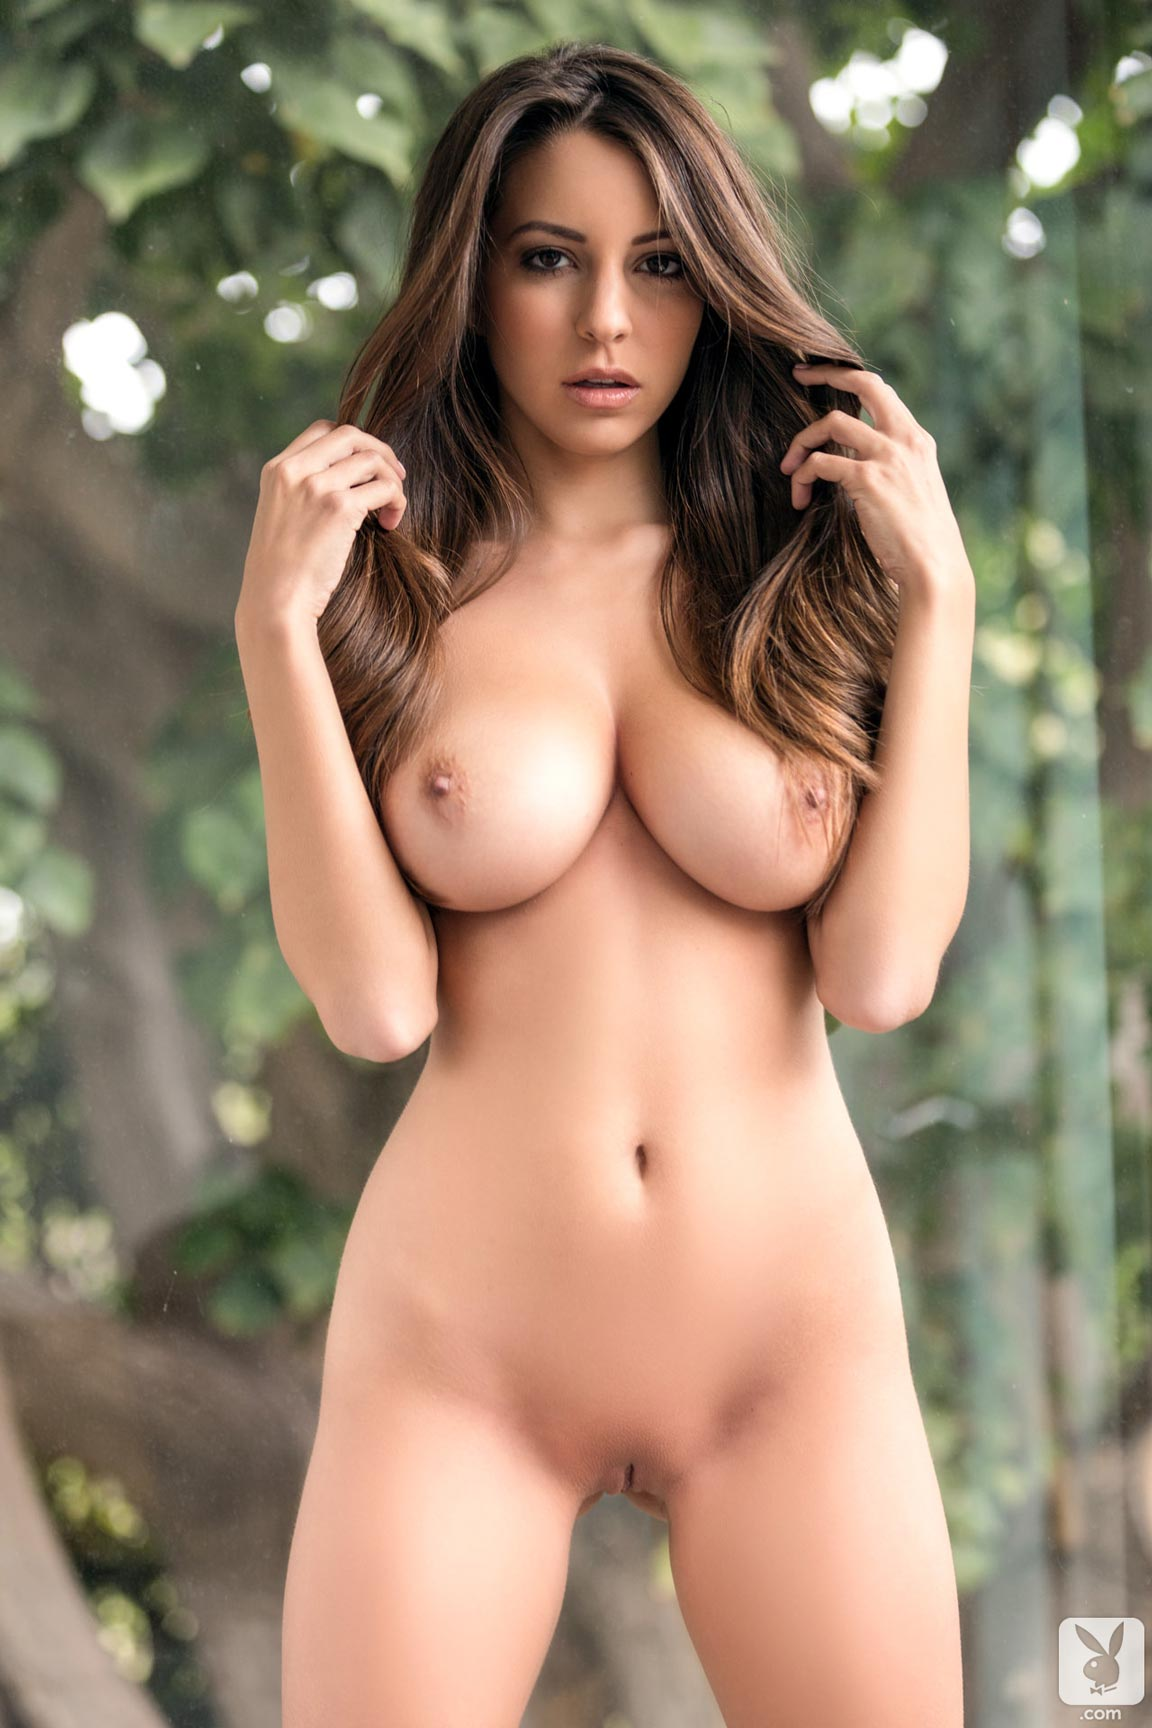 Playboy Playmate Shelby Chesnes Starts The Day With A -5851